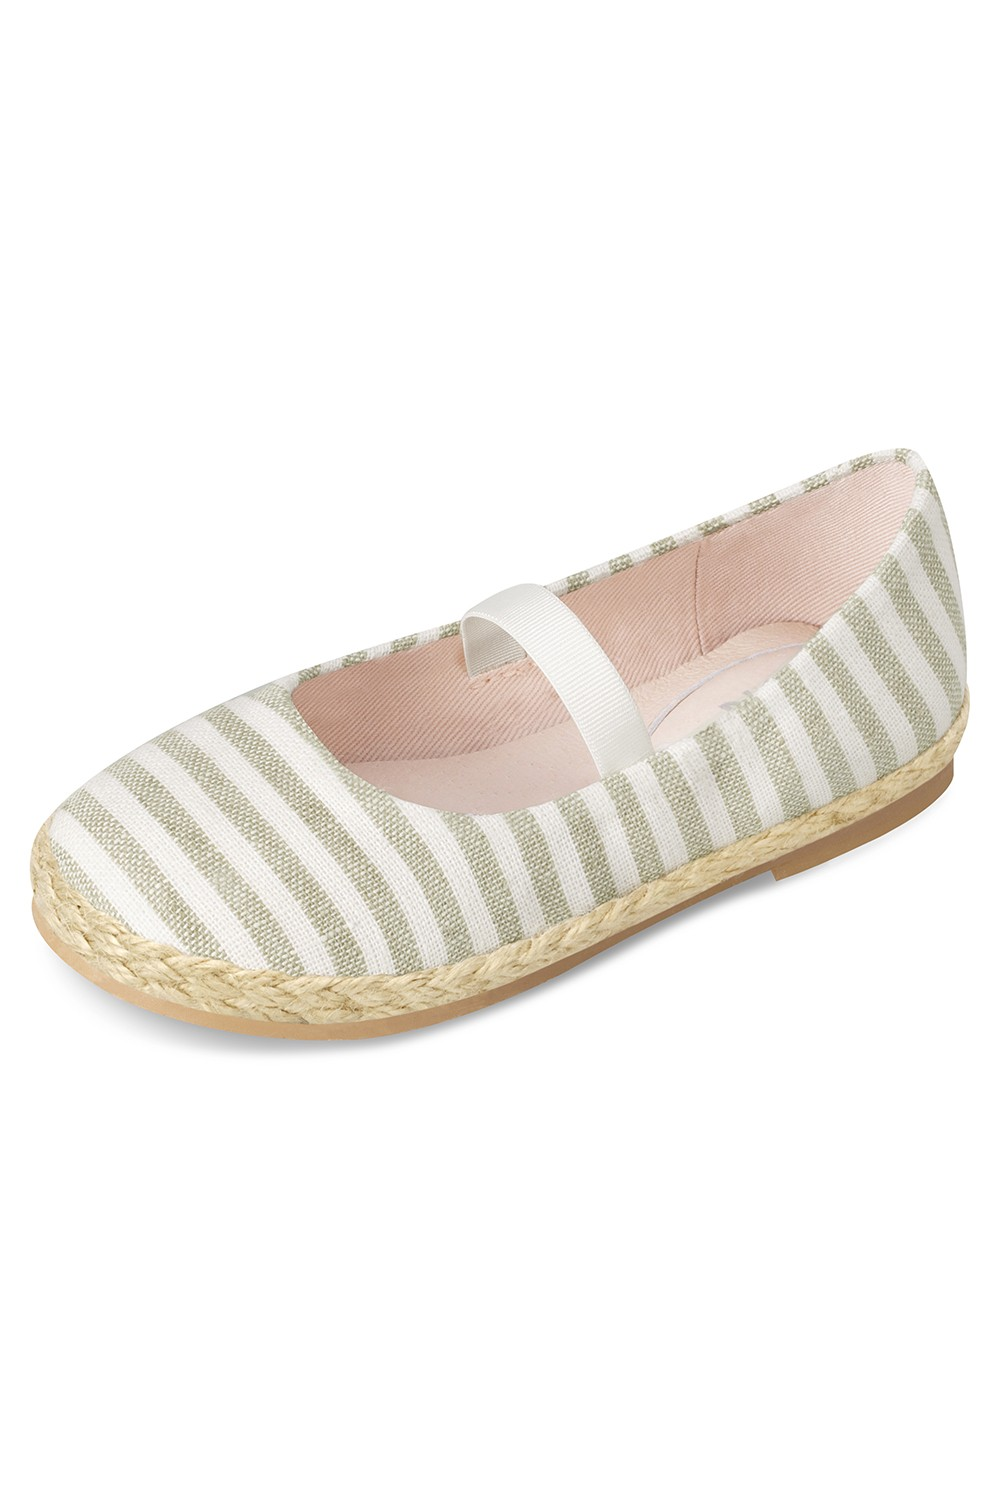 Aria Toddler Ballet Shoe Toddlers Fashion Shoes